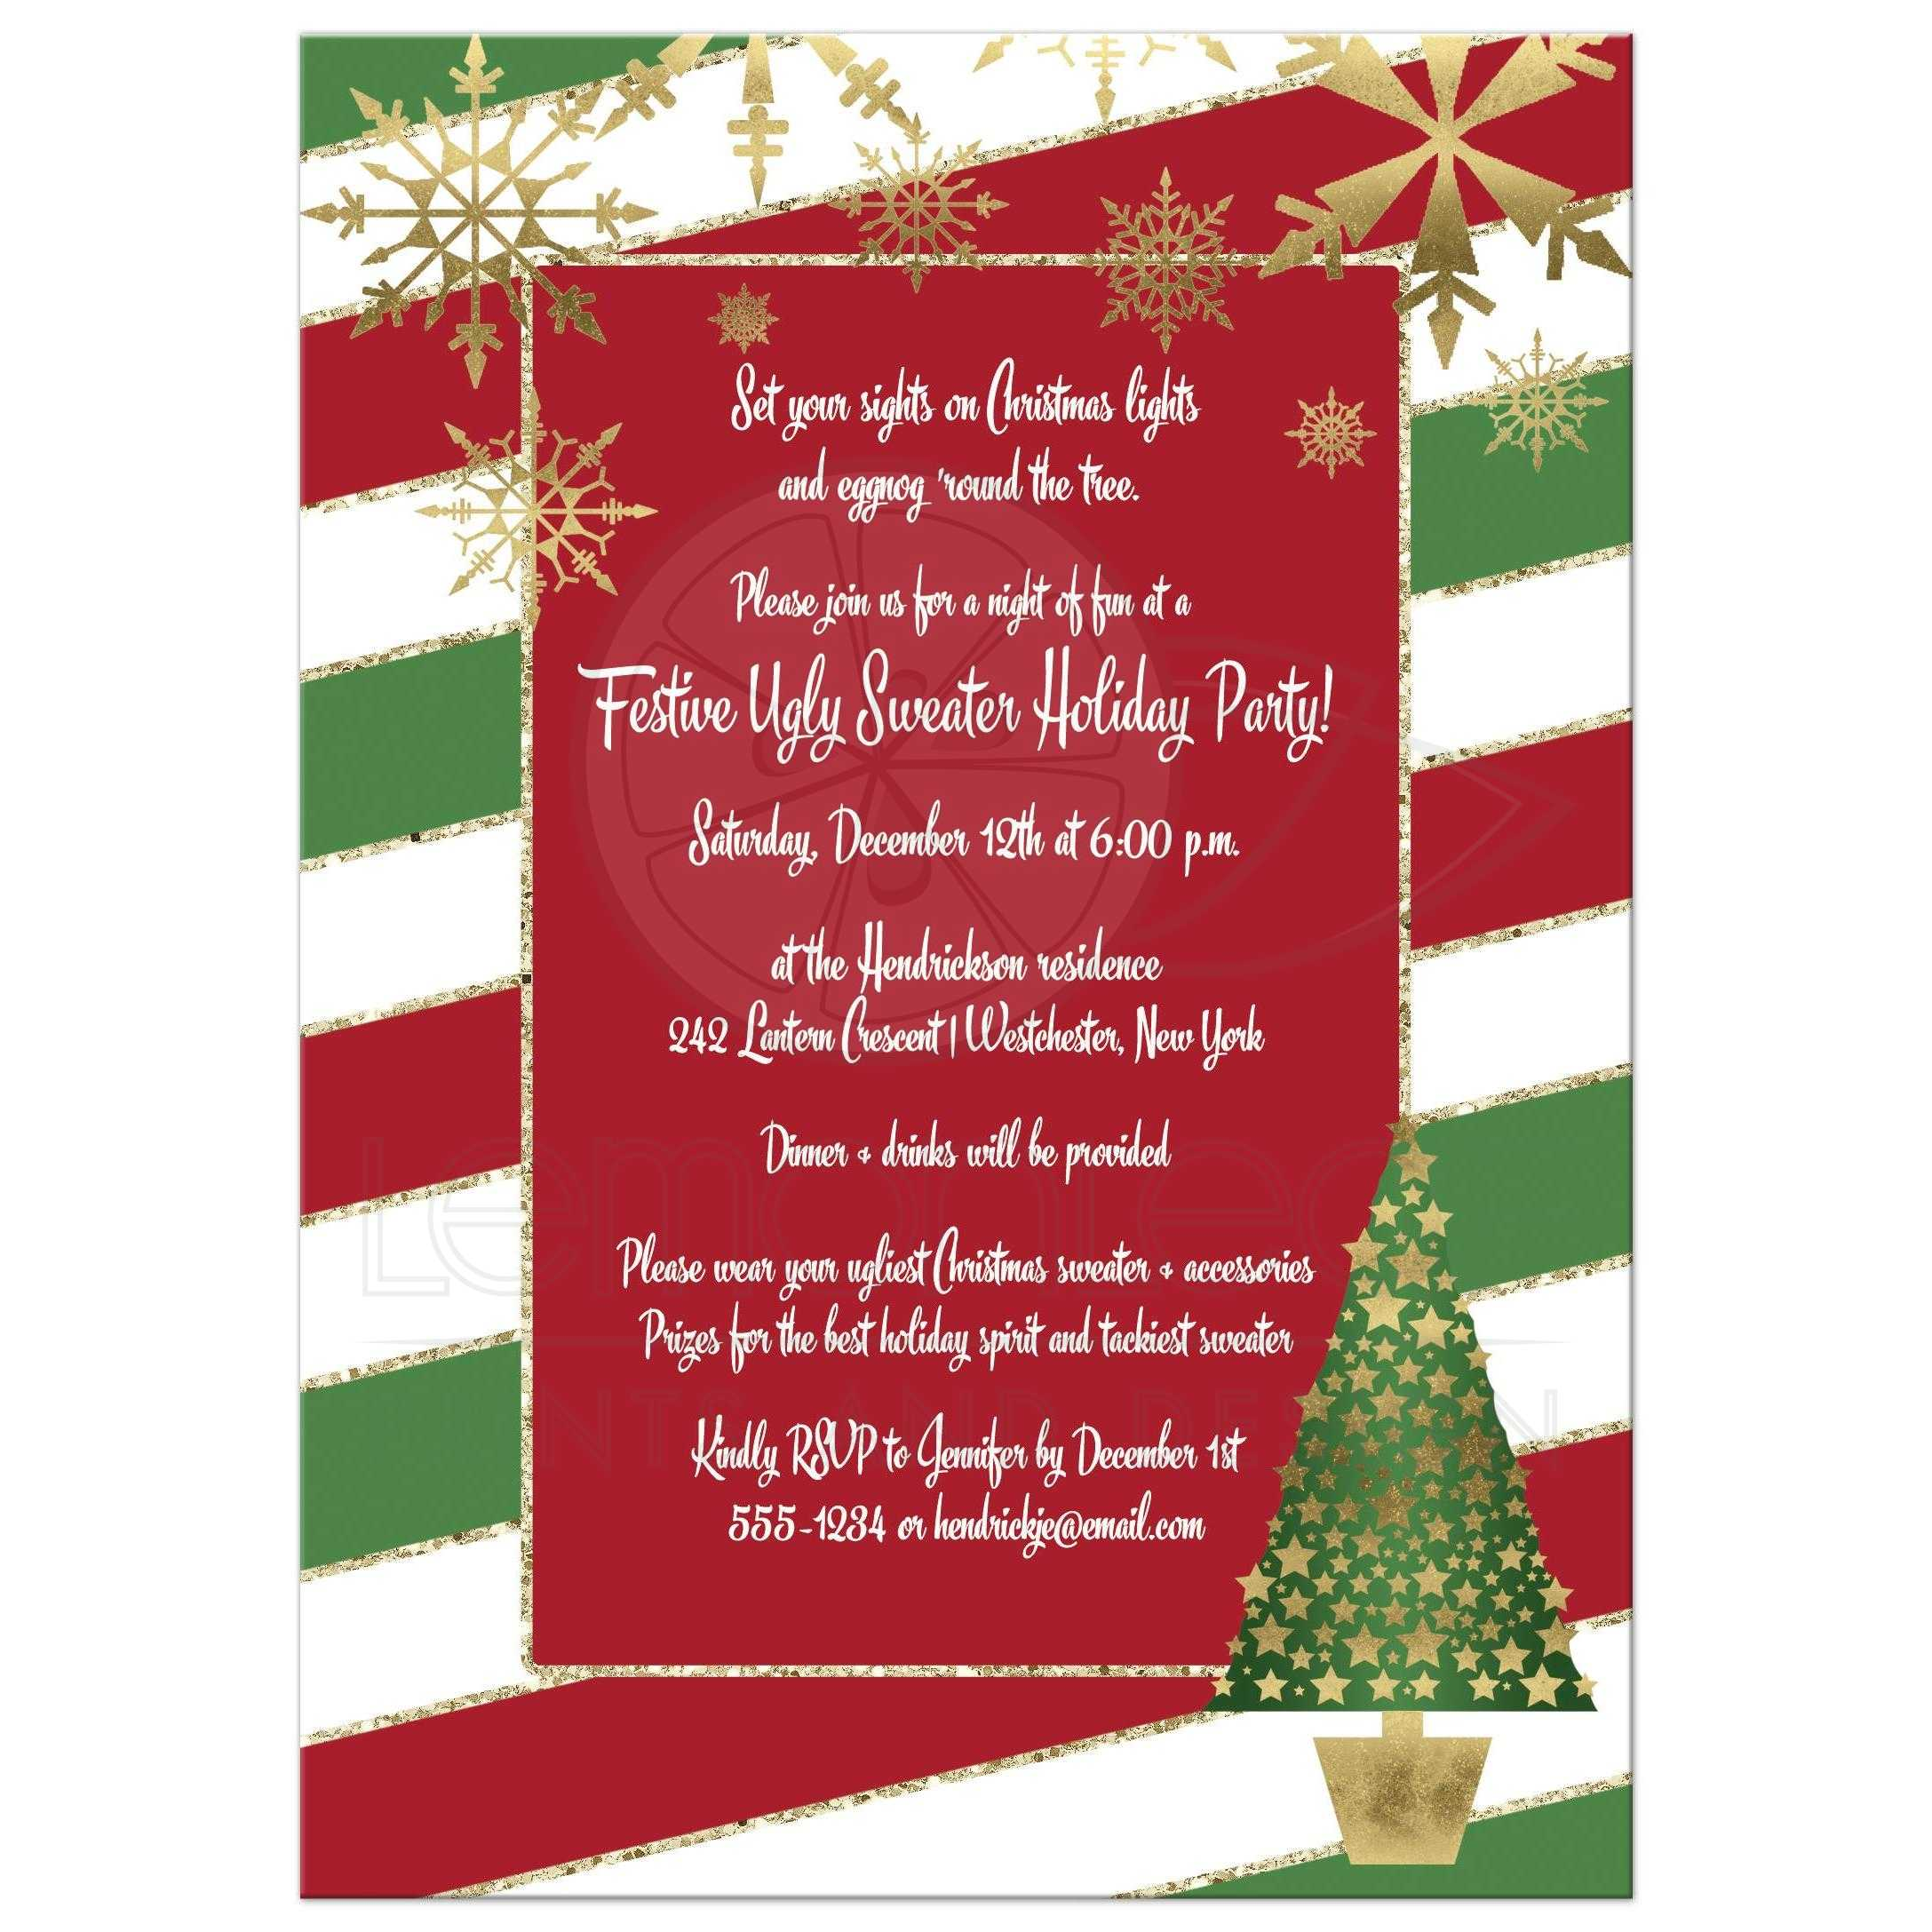 Ugly Christmas Sweater Party Invite.Holiday Party Invitation Red White Green Candy Cane Stripes Faux Gold Snowflakes Tree